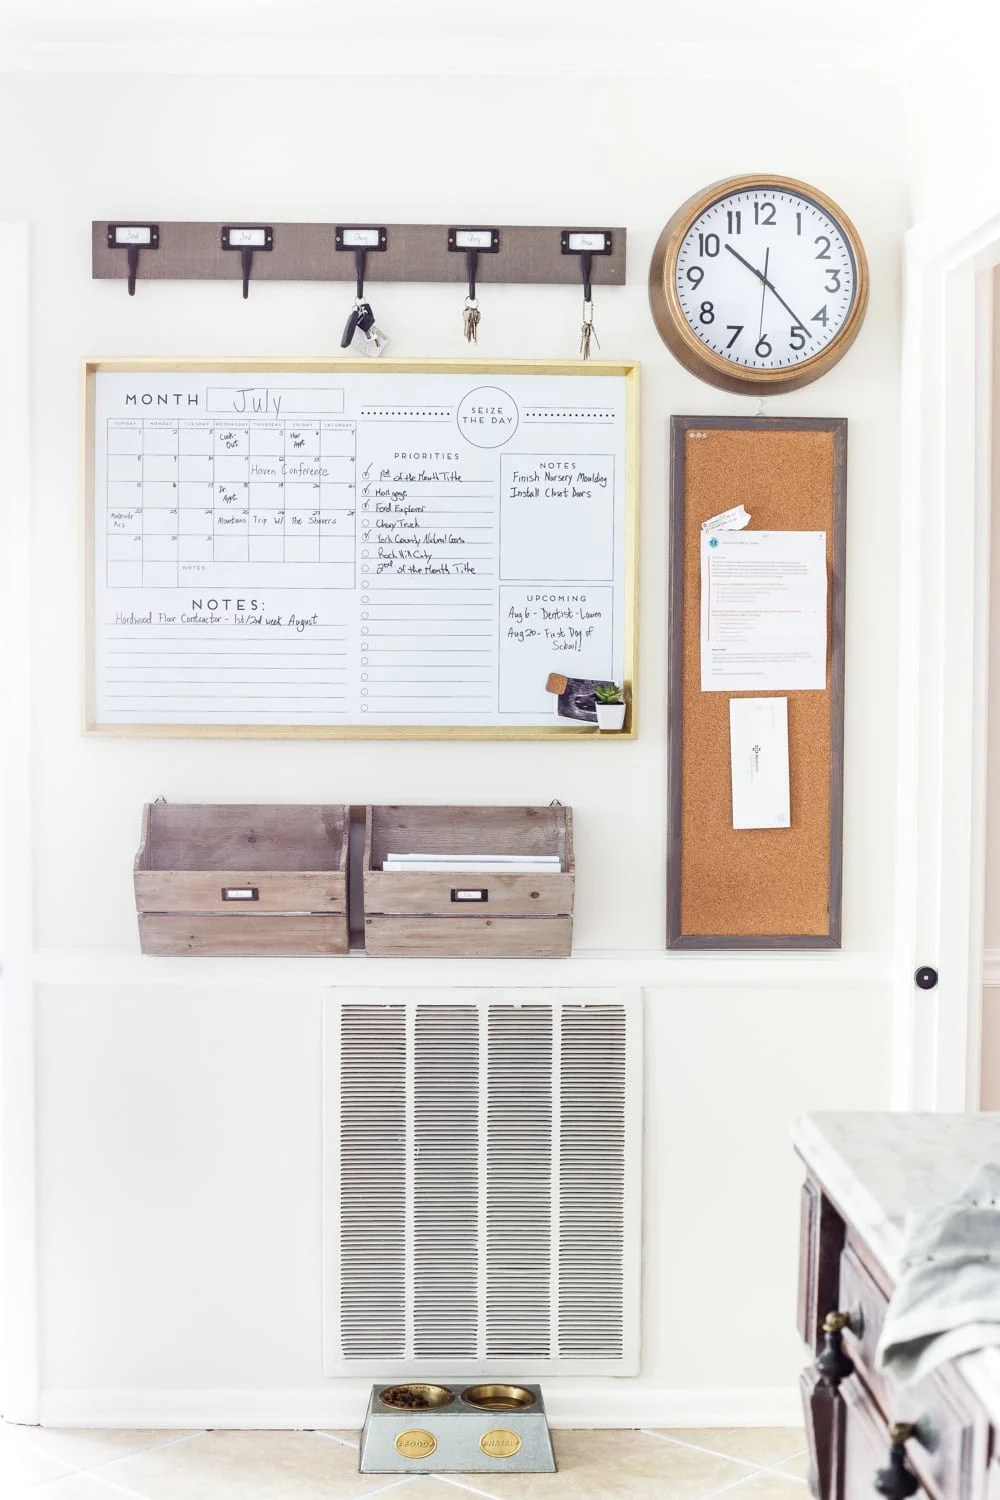 Large whiteboard calender, key hooks, clock, bulletin board and wooden crates for filing papers